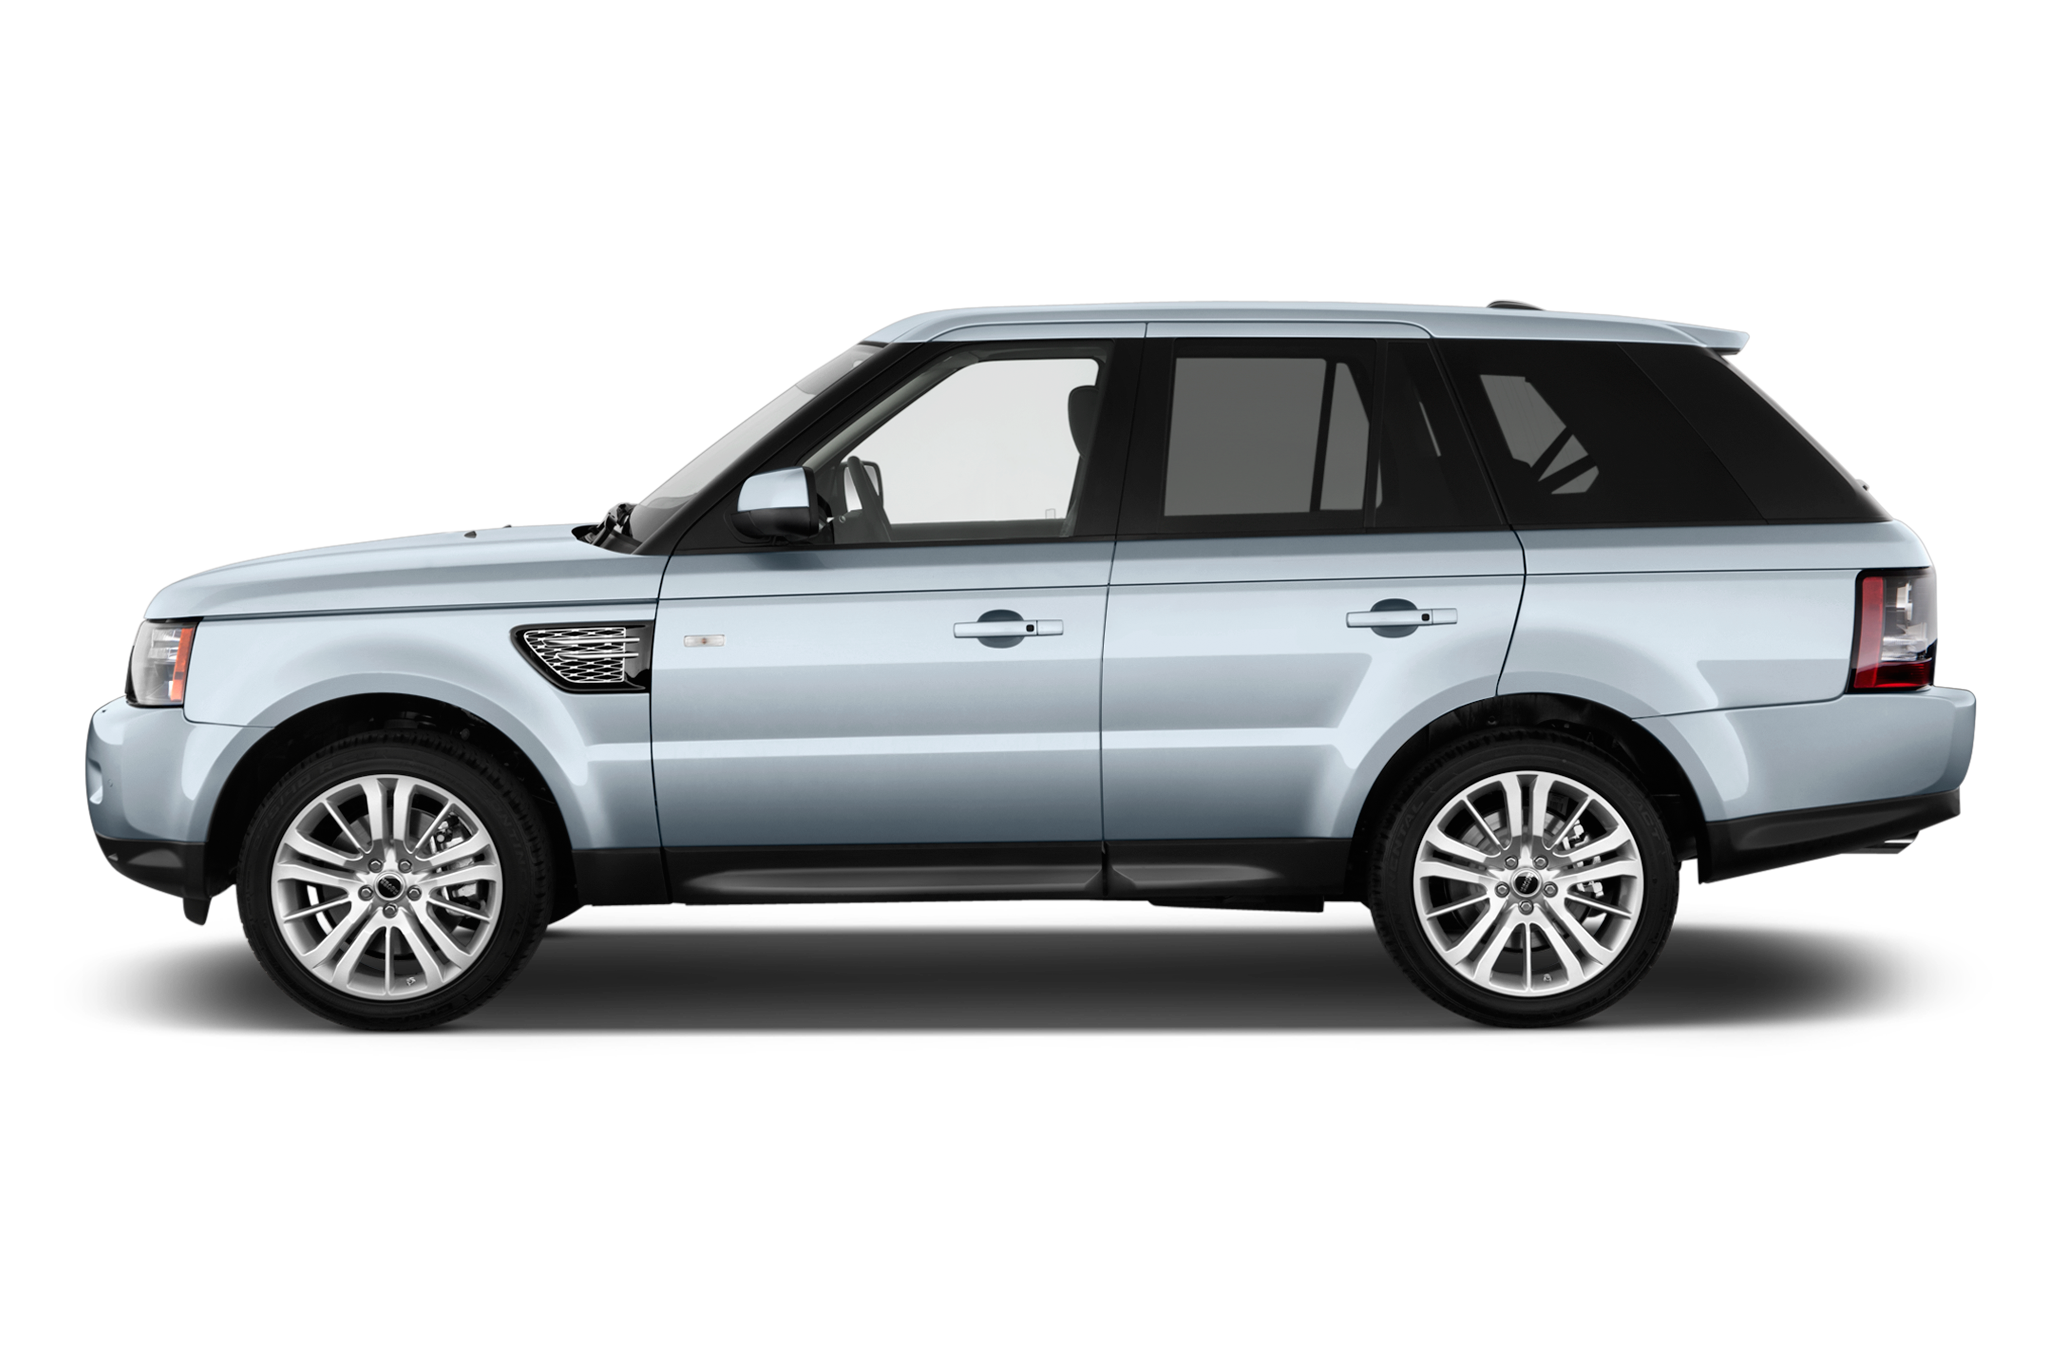 http://st.automobilemag.com/uploads/sites/10/2015/11/2012-land-rover-range-rover-sport-hse-suv-side-view.png